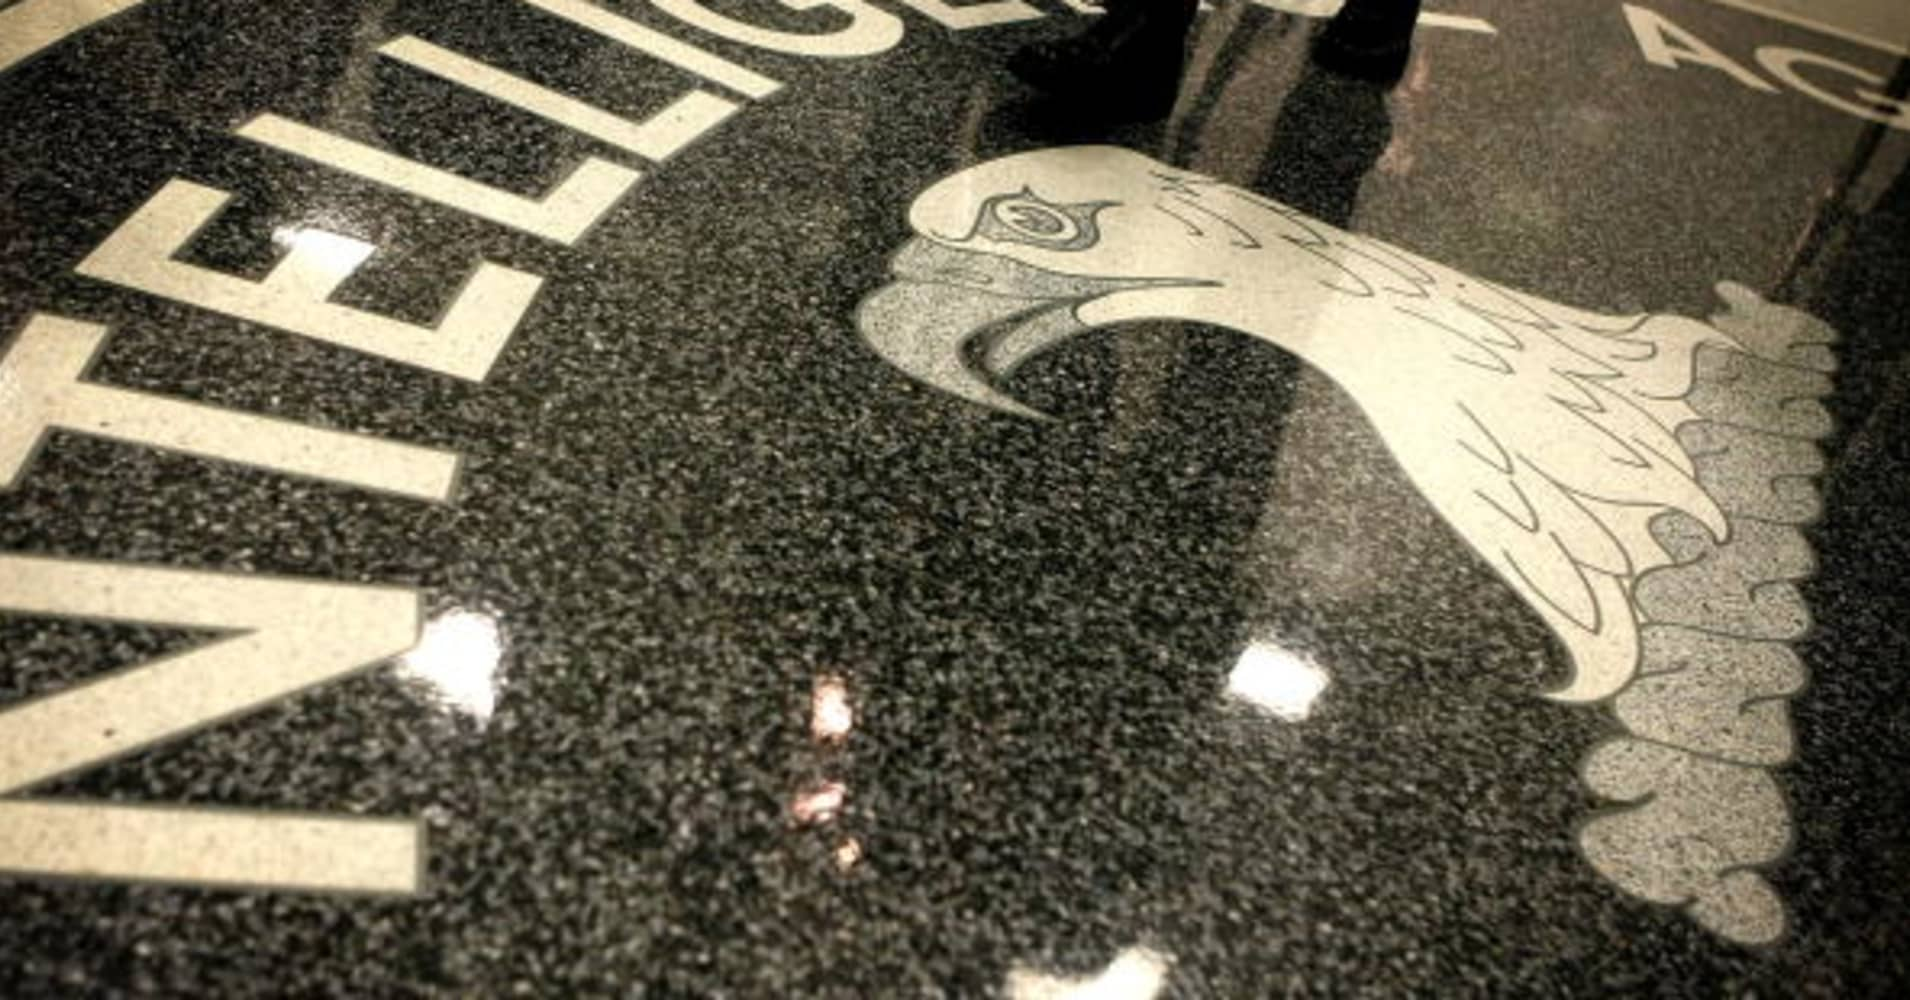 Alleged CIA China turncoat Lee may have also compromised US spies in Russia: NBC News